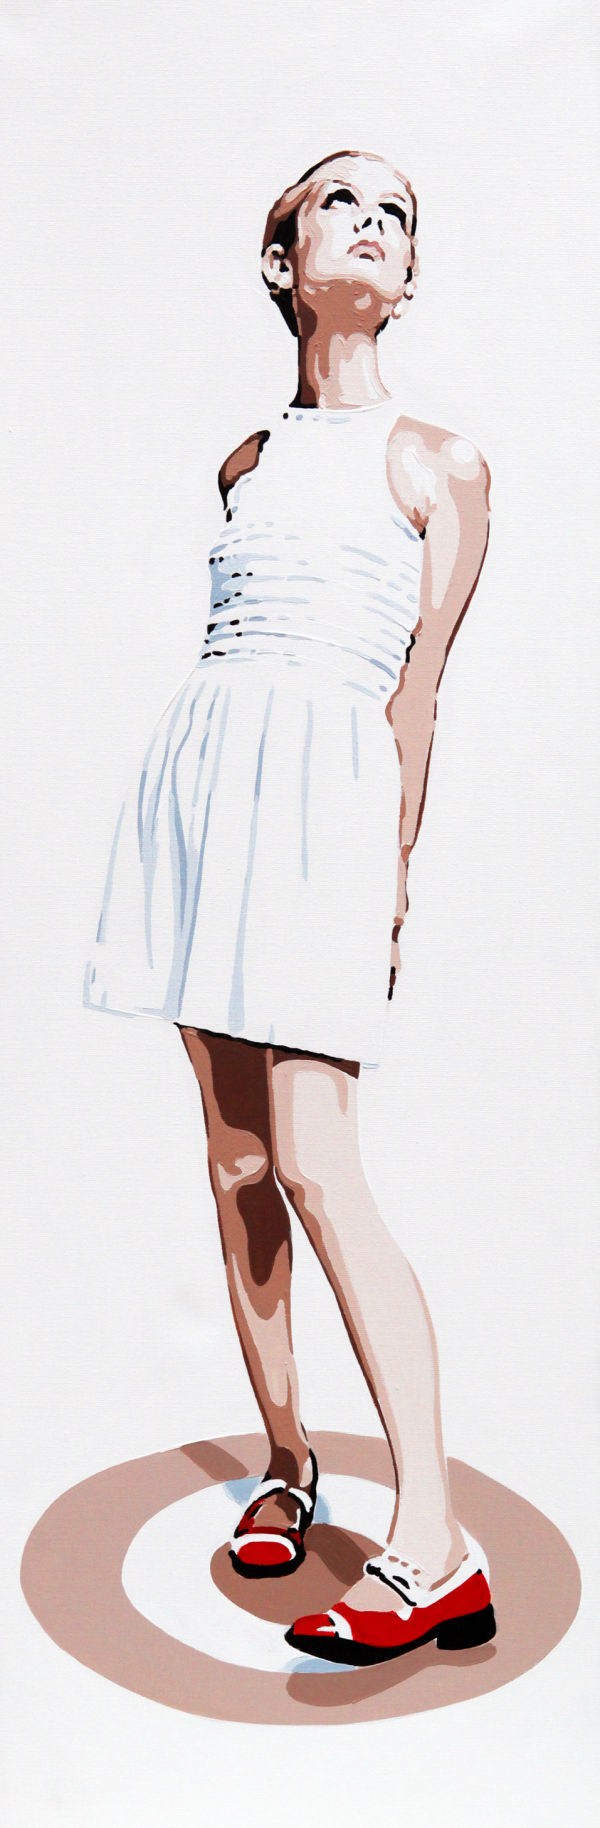 TWIGGY - RED SHOES. 36